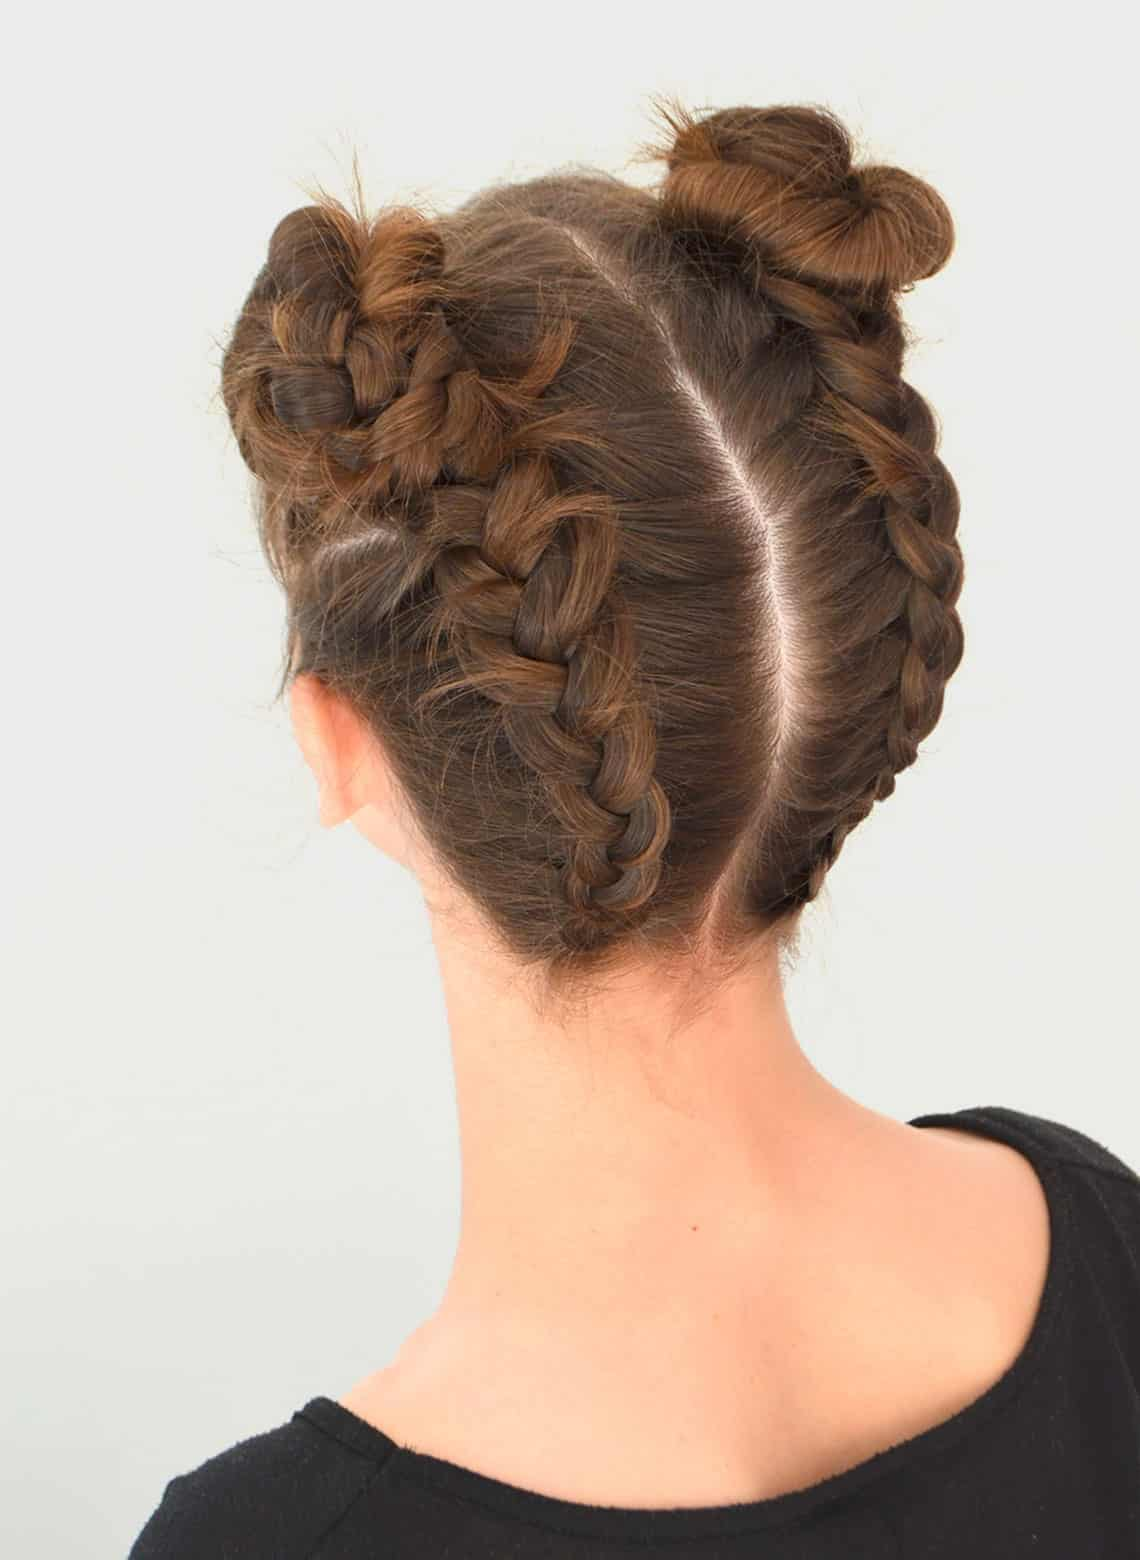 woman with french braided space buns